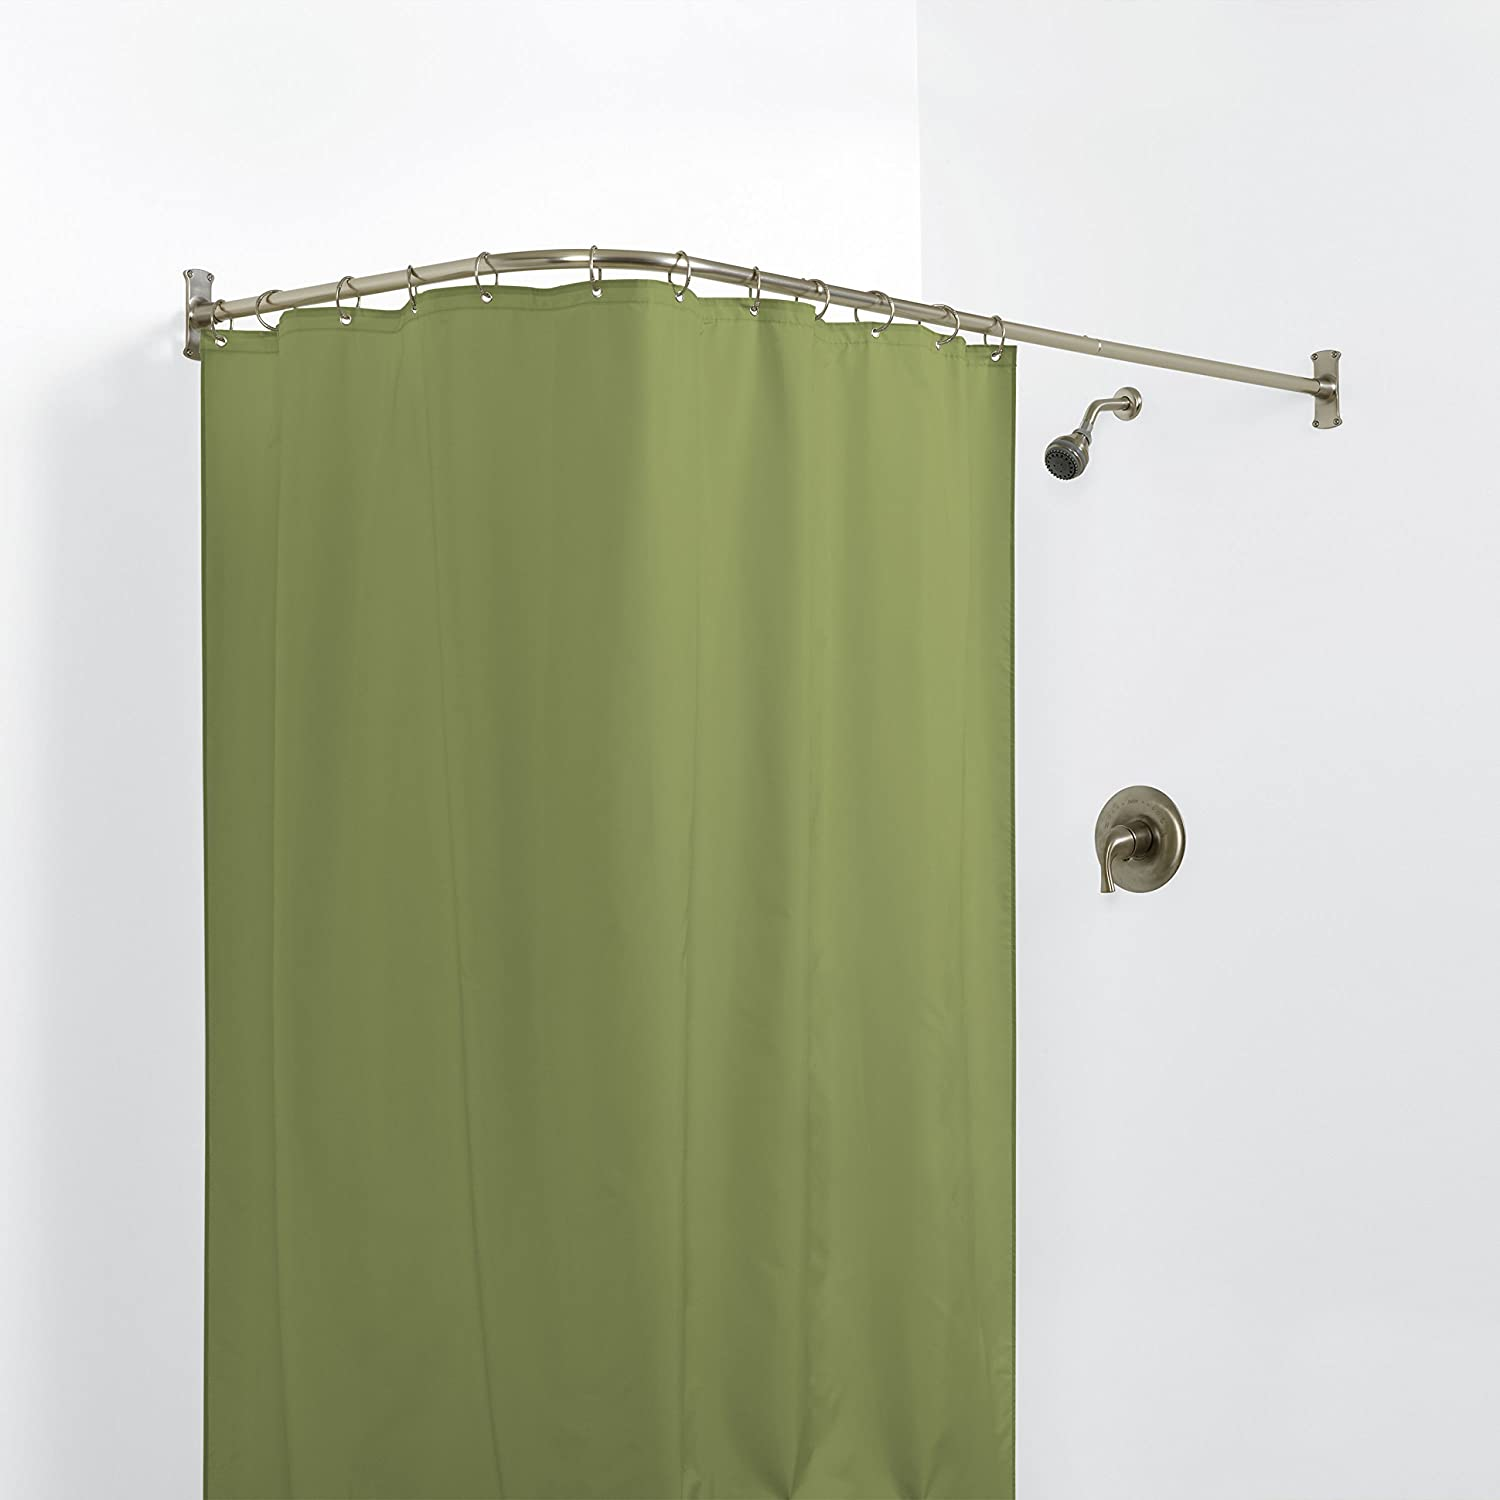 pinterest exclusive curtain round s corner bathrooms ideas ikea rod best of shower clever amazon rods